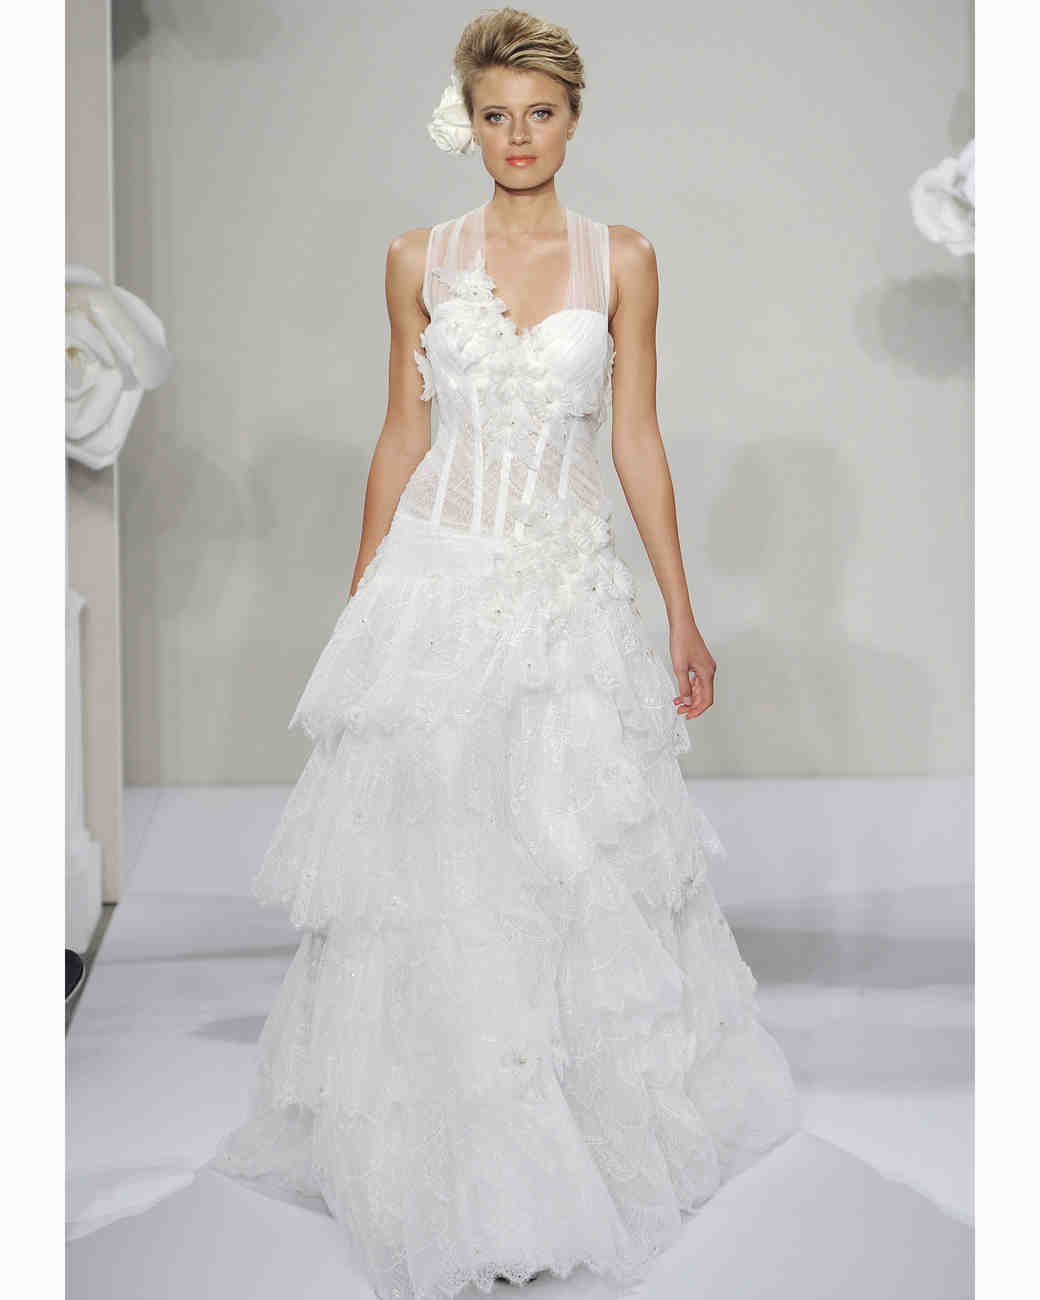 Pnina Tornai for Kleinfeld, Fall 2013 Collection | Martha Stewart ...